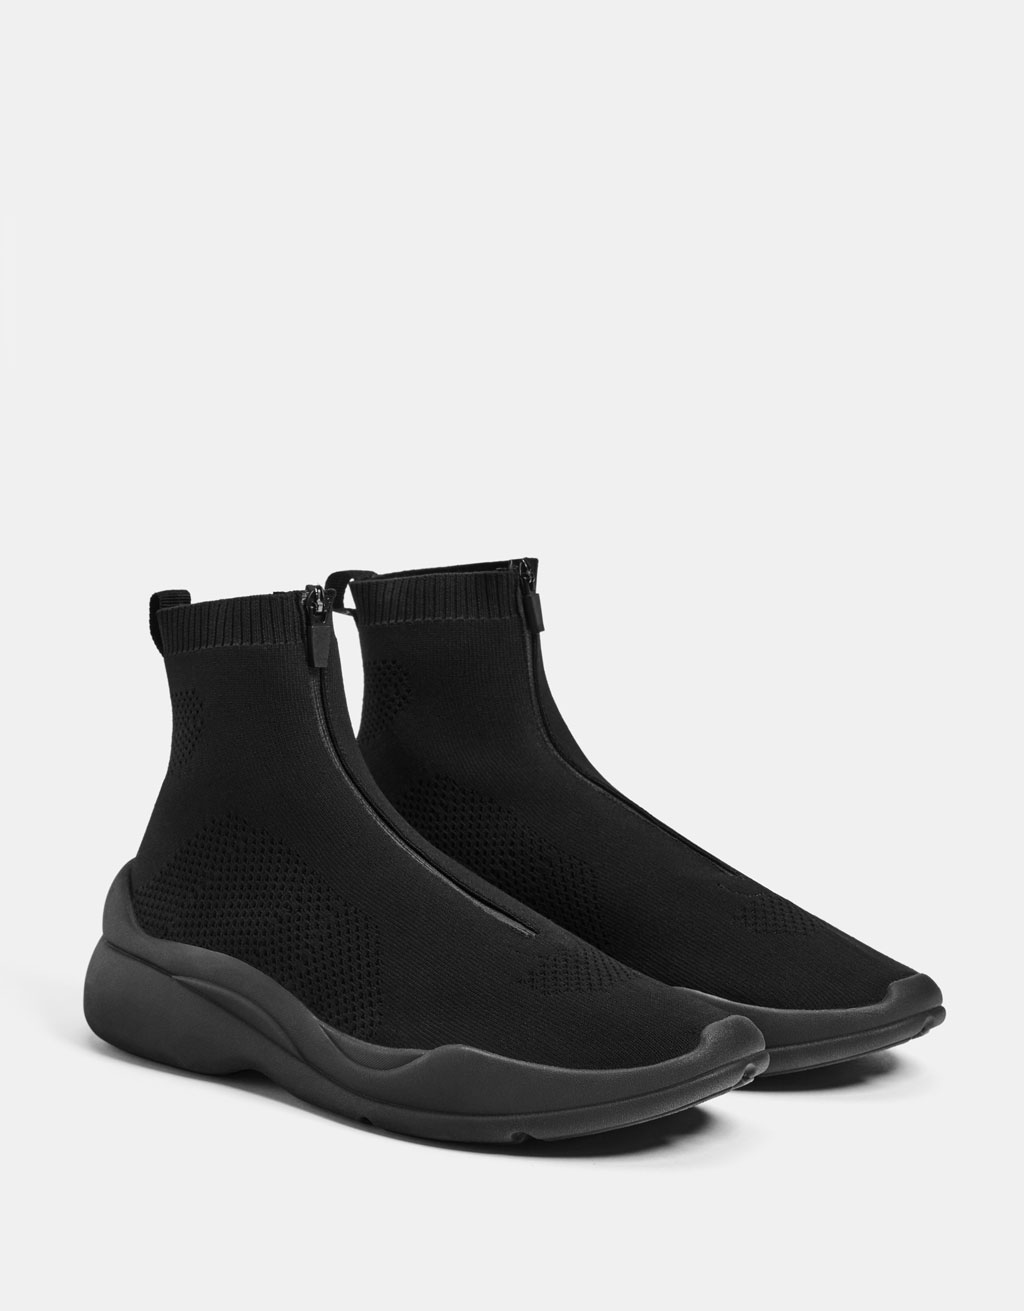 Men's zip-up sock-style trainers